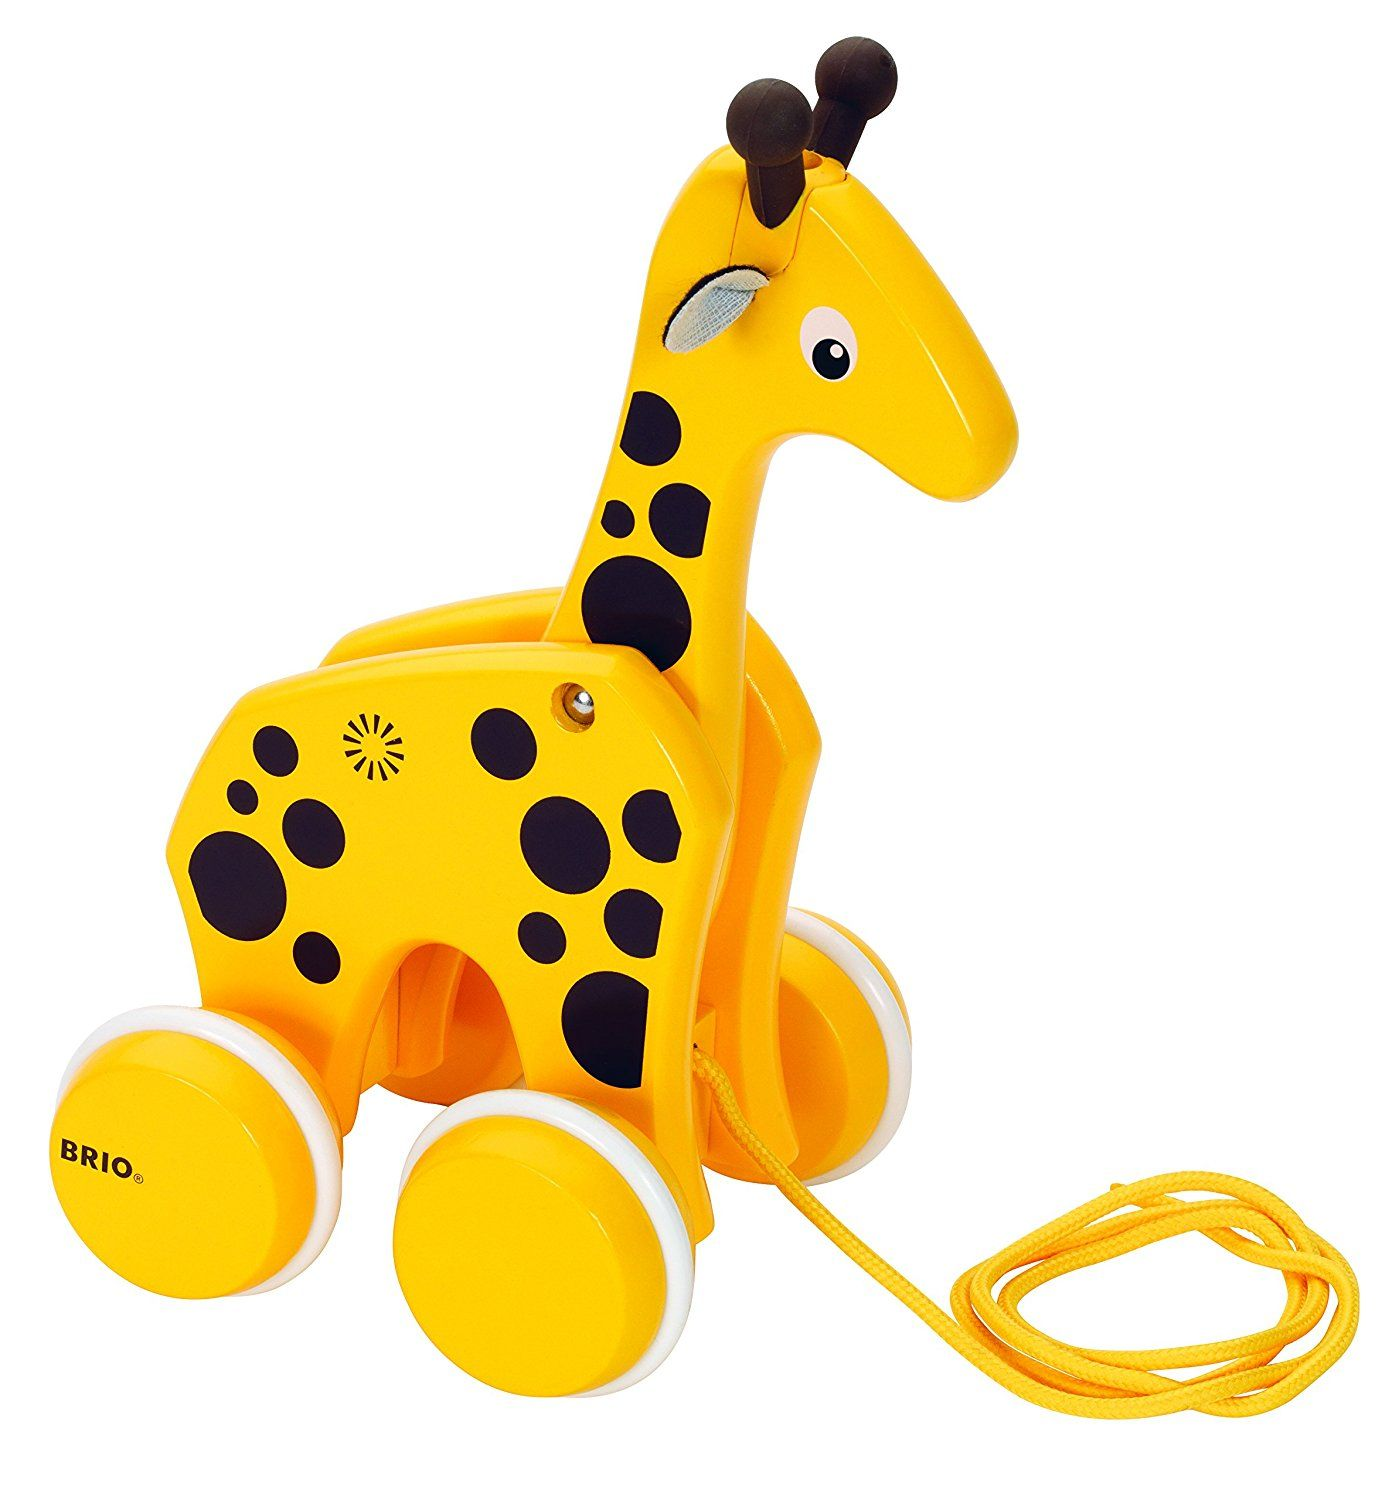 BRIO Infant & Toddler Pull along Giraffe Amazon Toys